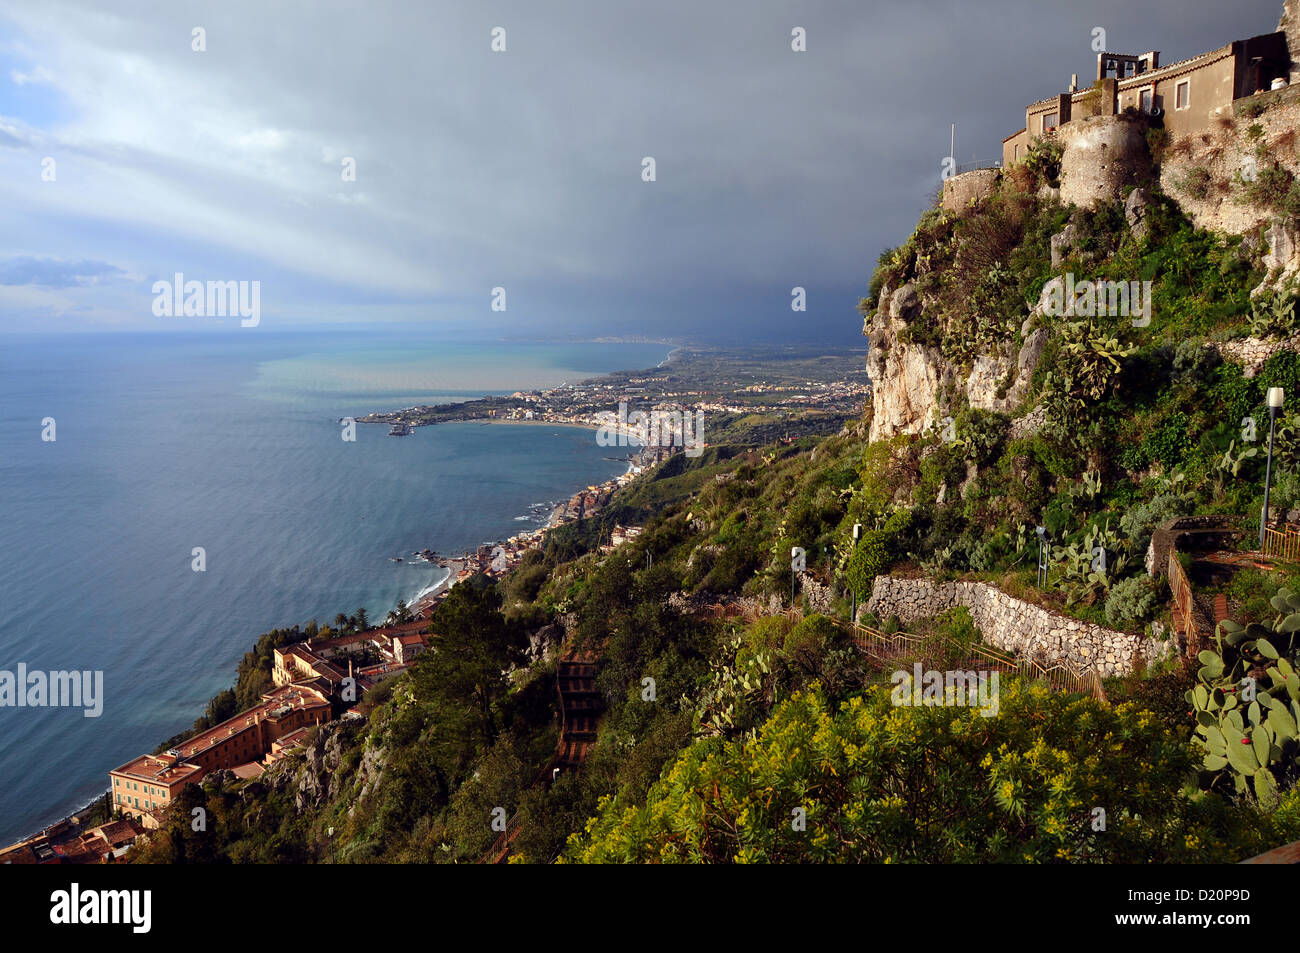 View from Taormina on the bay of Naxos, Sicily, Italy, Taormina, eastcoast, Sicily, Italy - Stock Image